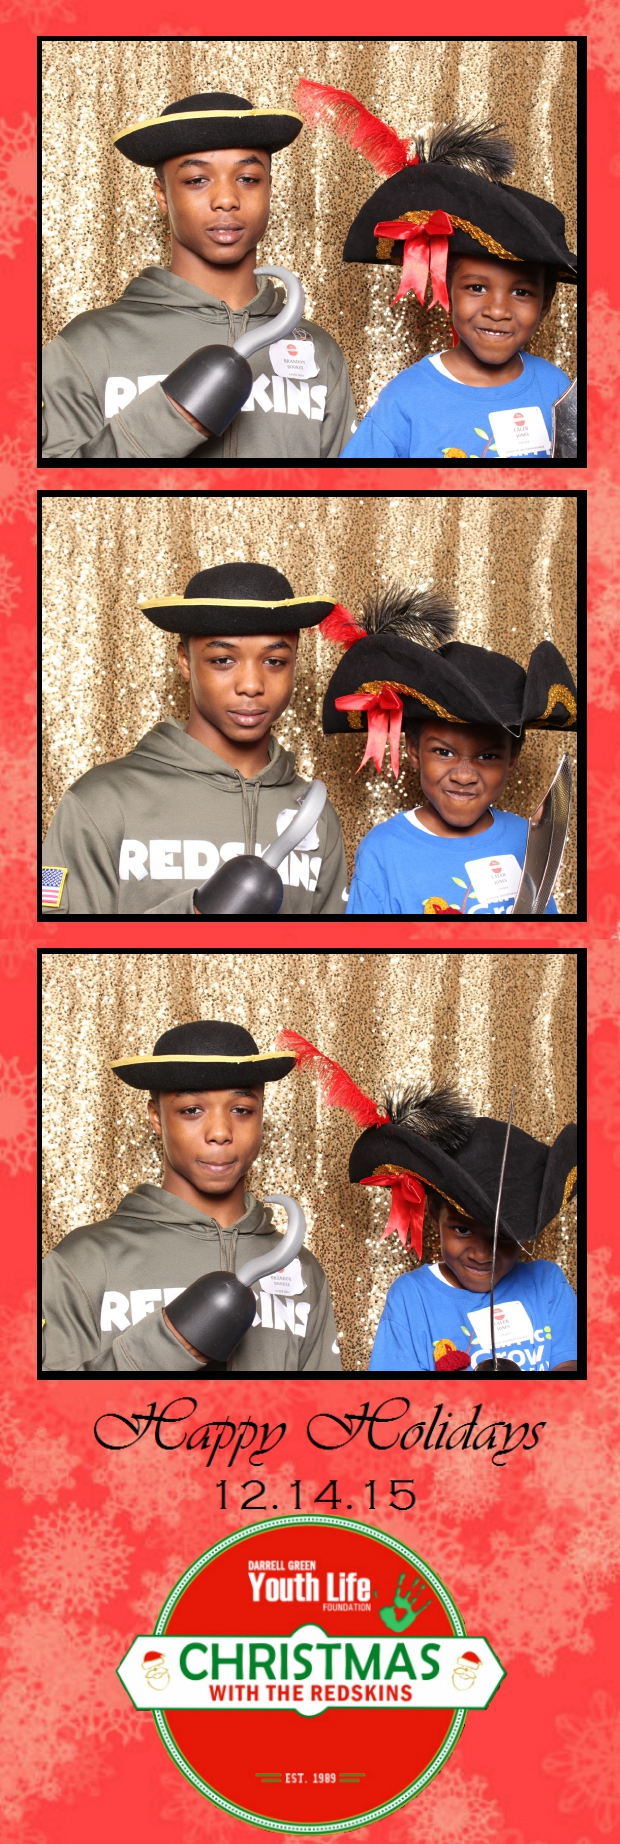 Guest House Events Photo Booth DGYLF Strips (57).jpg